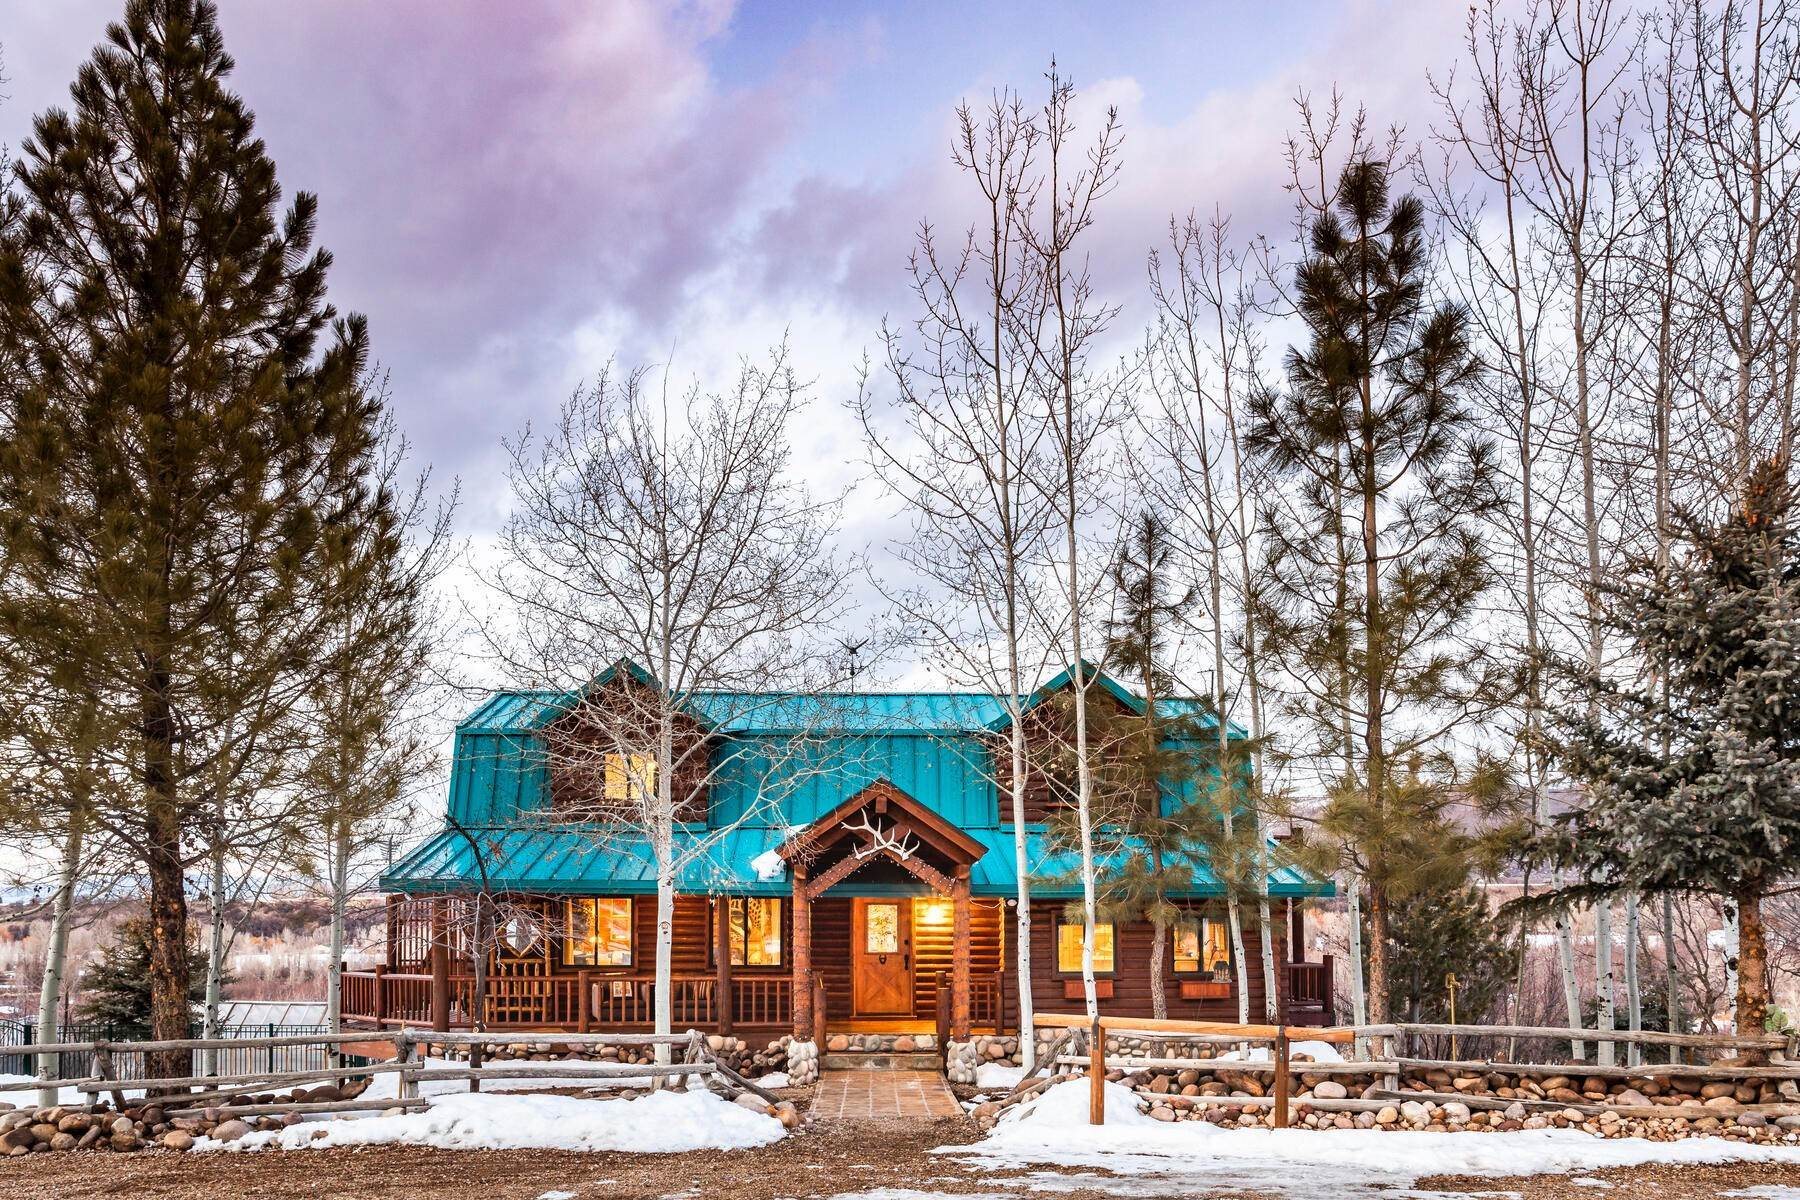 Single Family Homes for Sale at Artistically Reimagined 4 BR Cabin on 5 Equestrian Acres Overlooking Provo River 3941 S River View Drive Kamas, Utah 84036 United States